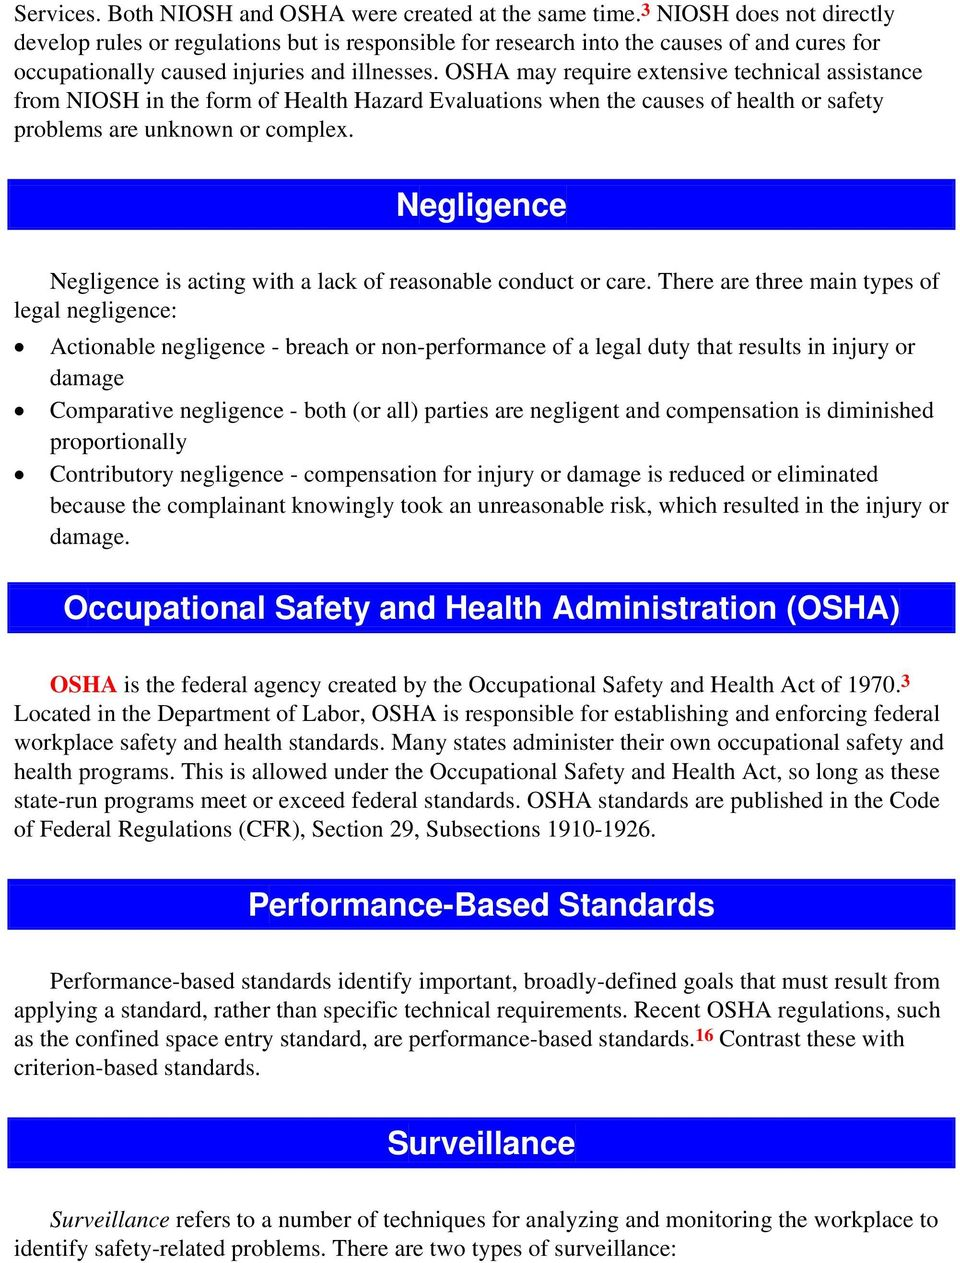 OSHA may require extensive technical assistance from NIOSH in the form of Health Hazard Evaluations when the causes of health or safety problems are unknown or complex.